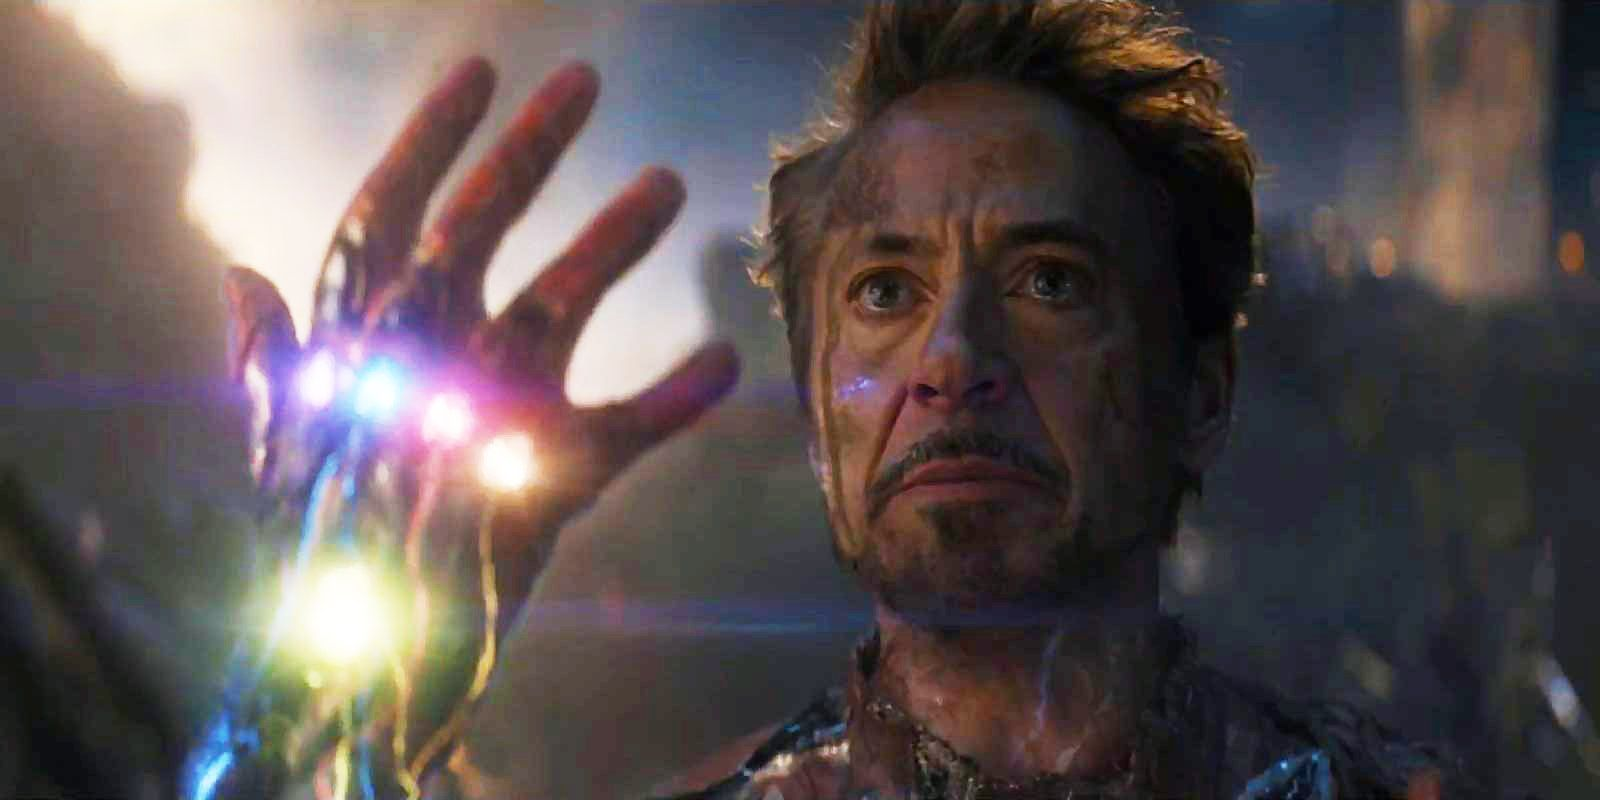 Marvel: RDJ Puts On The Infinity Gauntlet Again For Charity